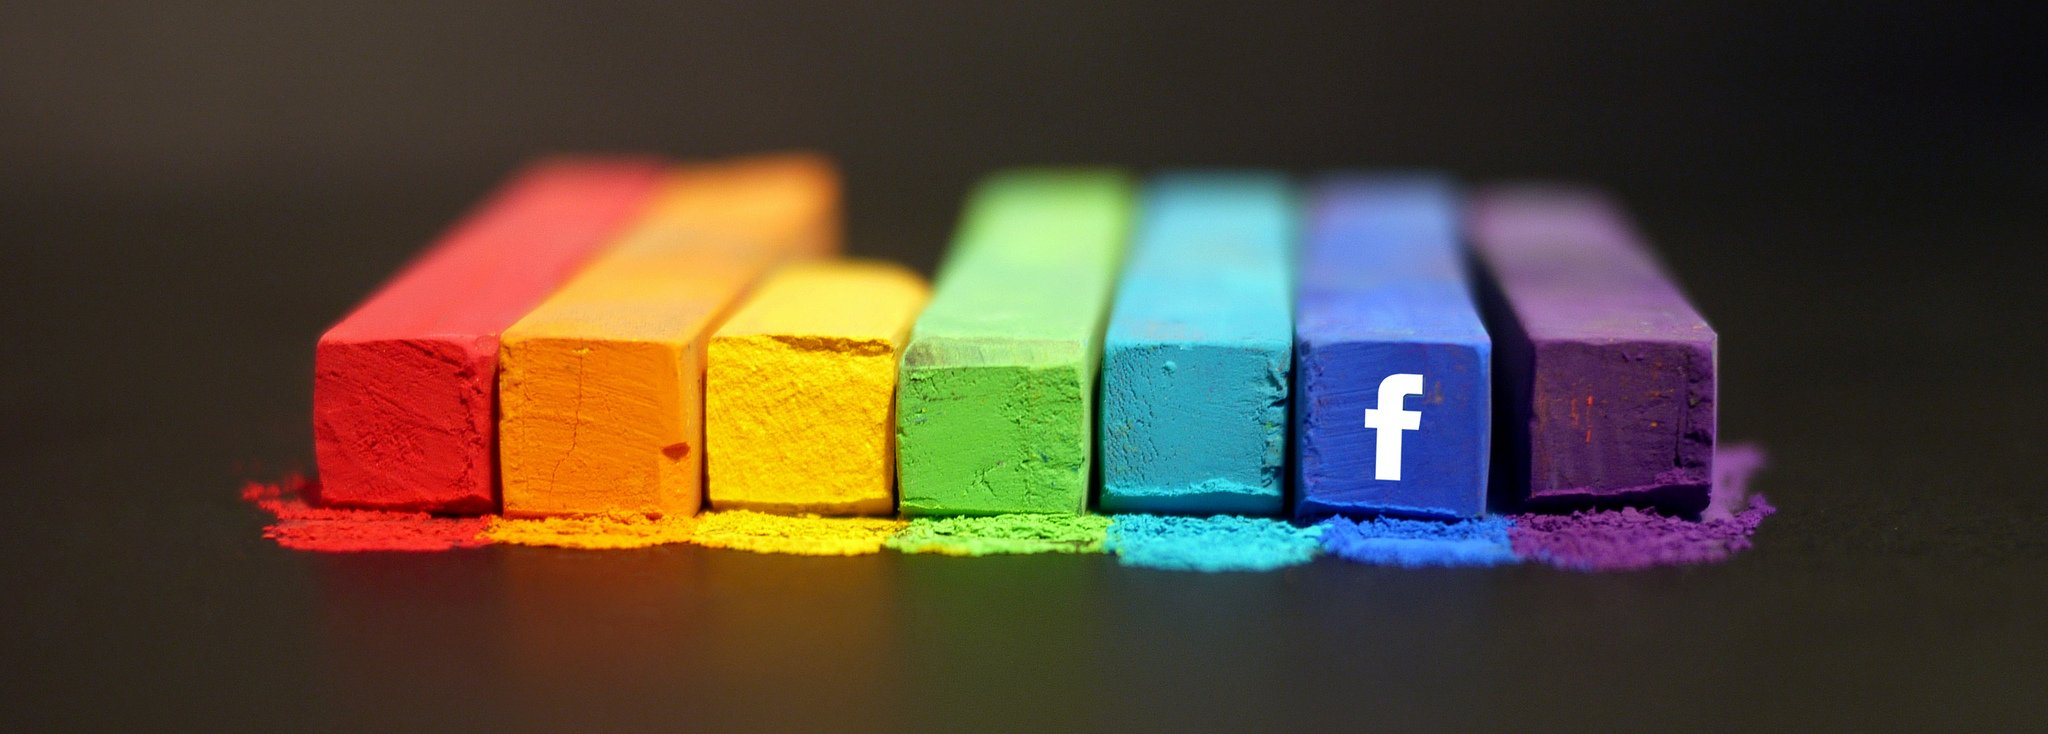 Why we like, comment, and interact on social media like facebook